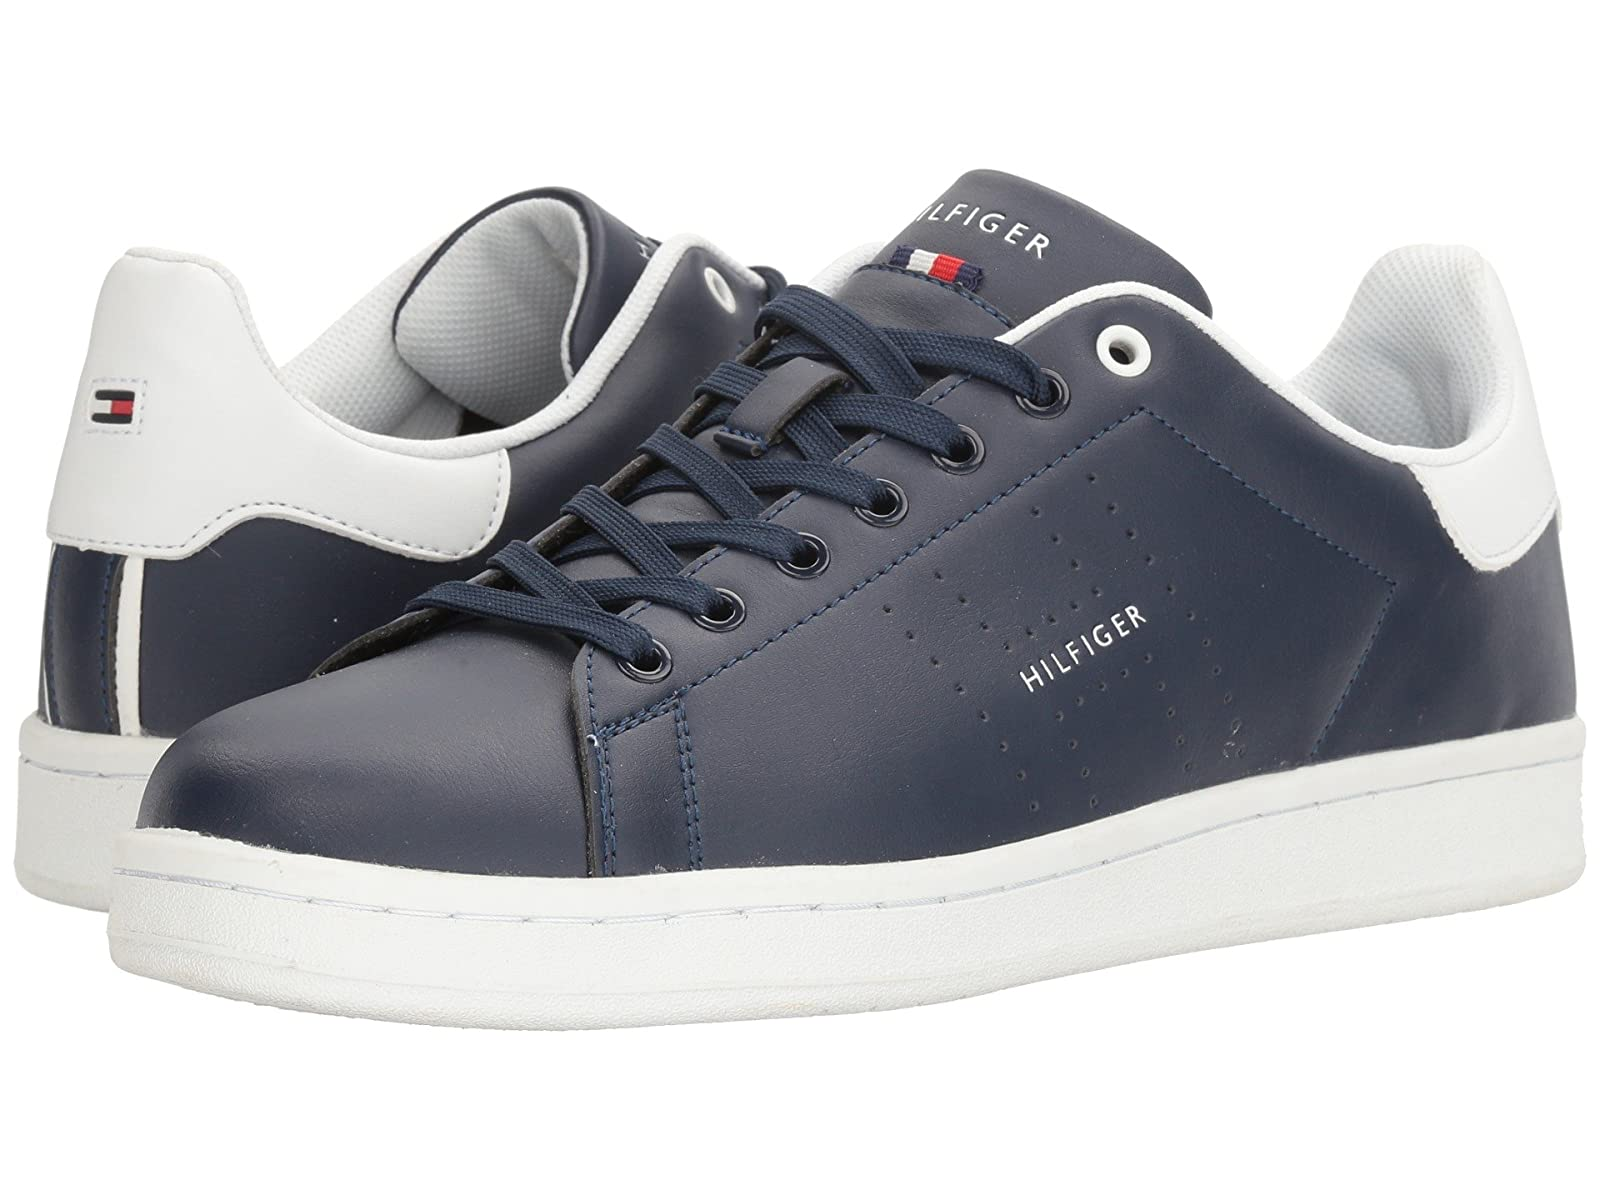 Tommy Hilfiger ListonCheap and distinctive eye-catching shoes